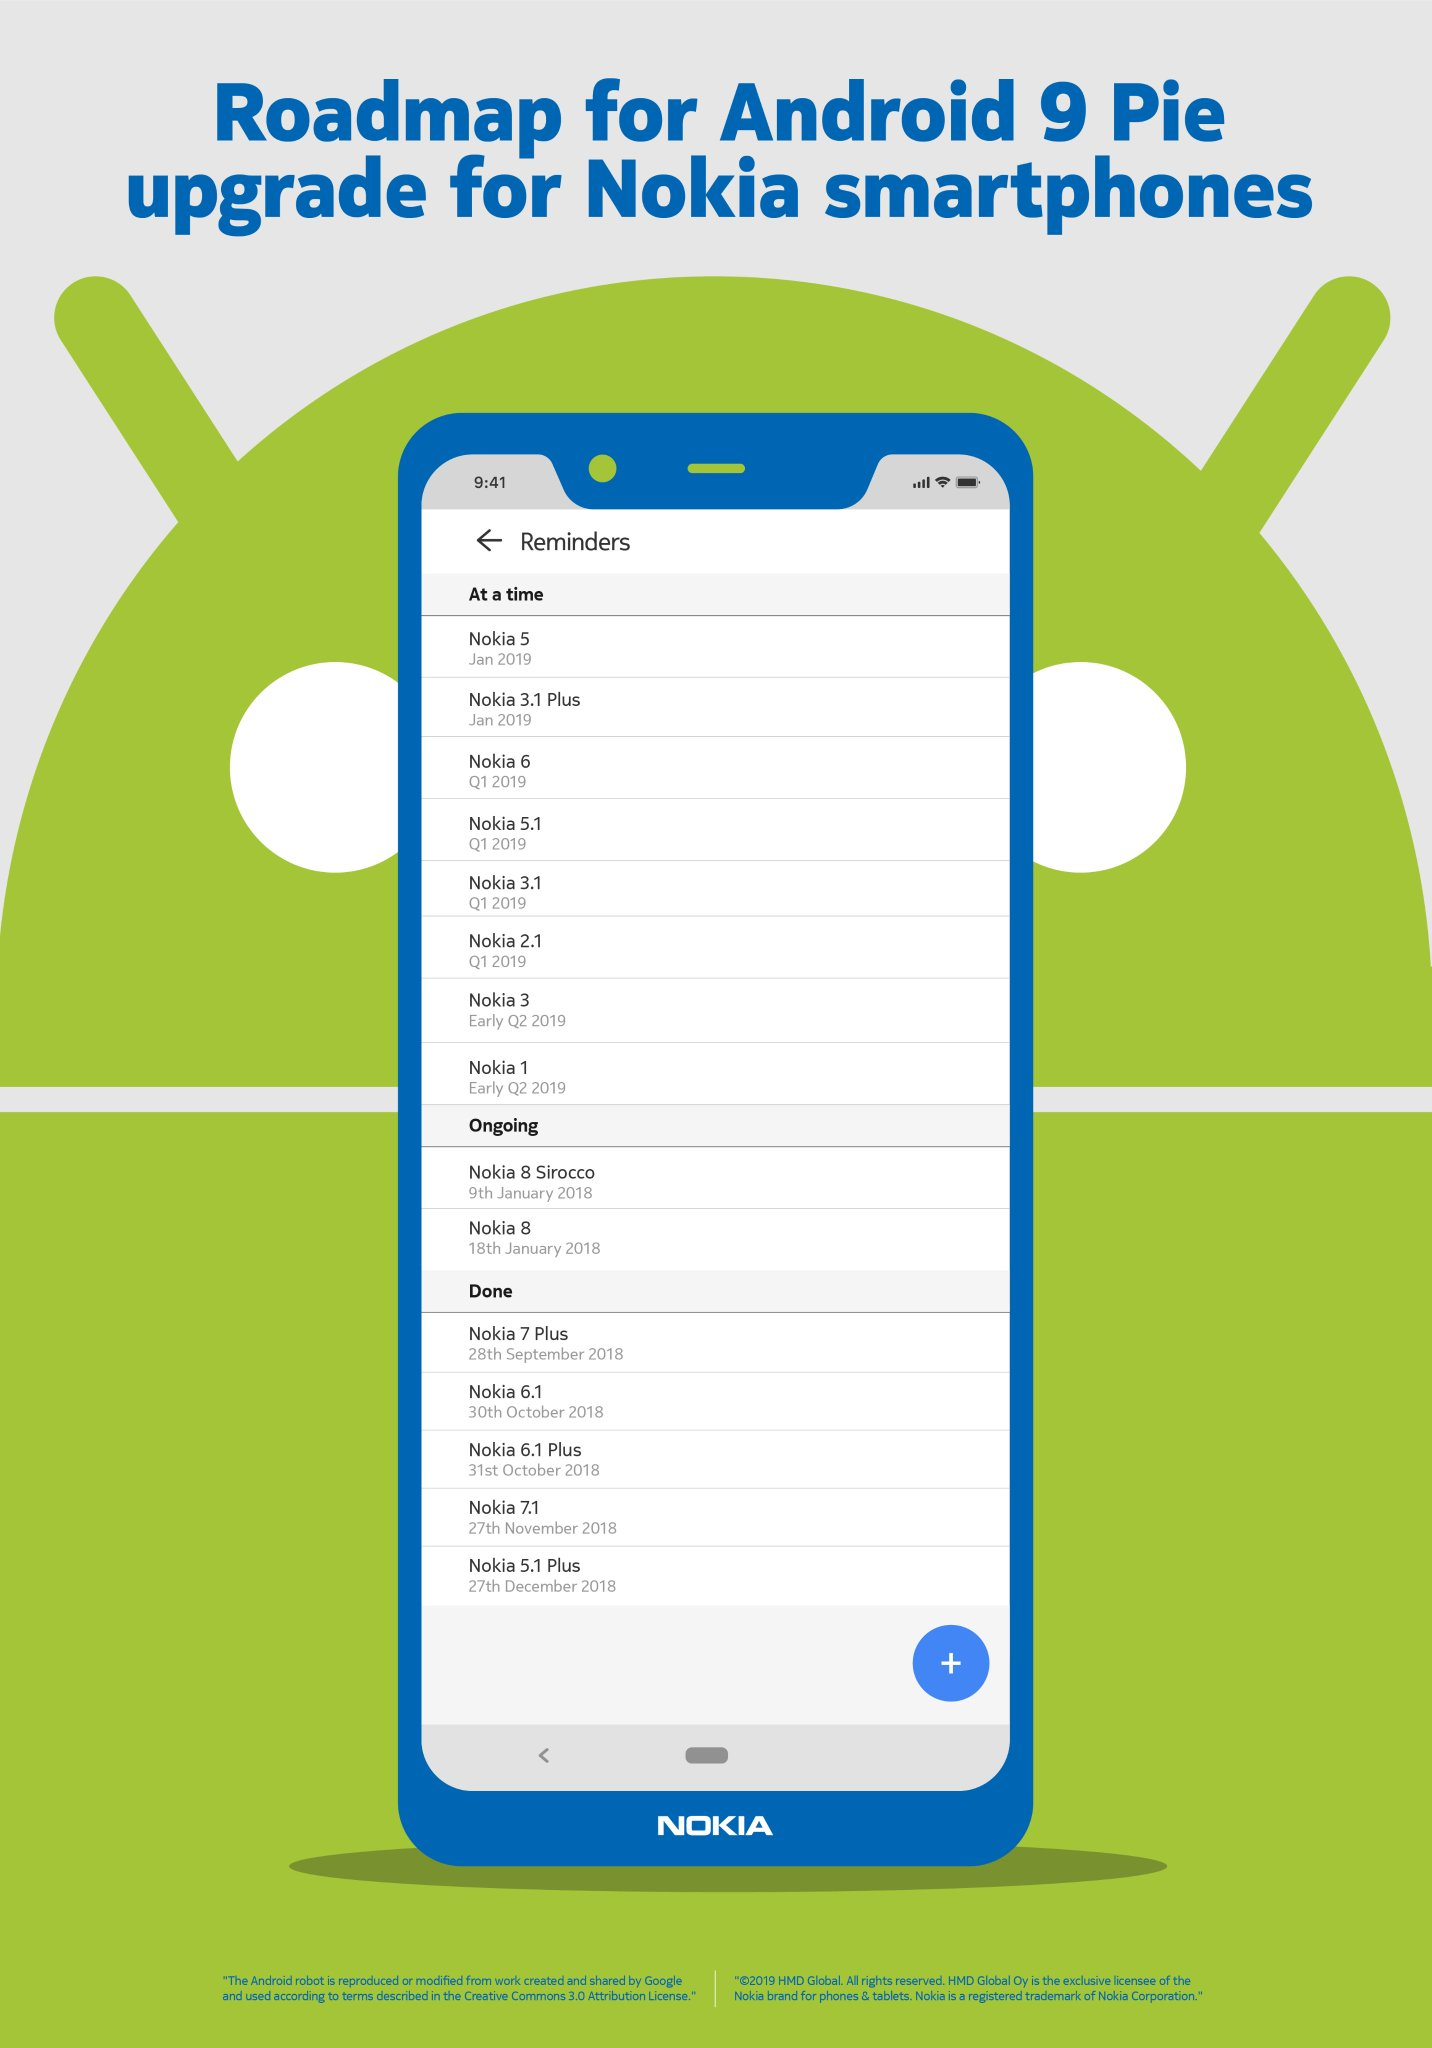 Official: HMD releases Android 9 Pie update roadmap for